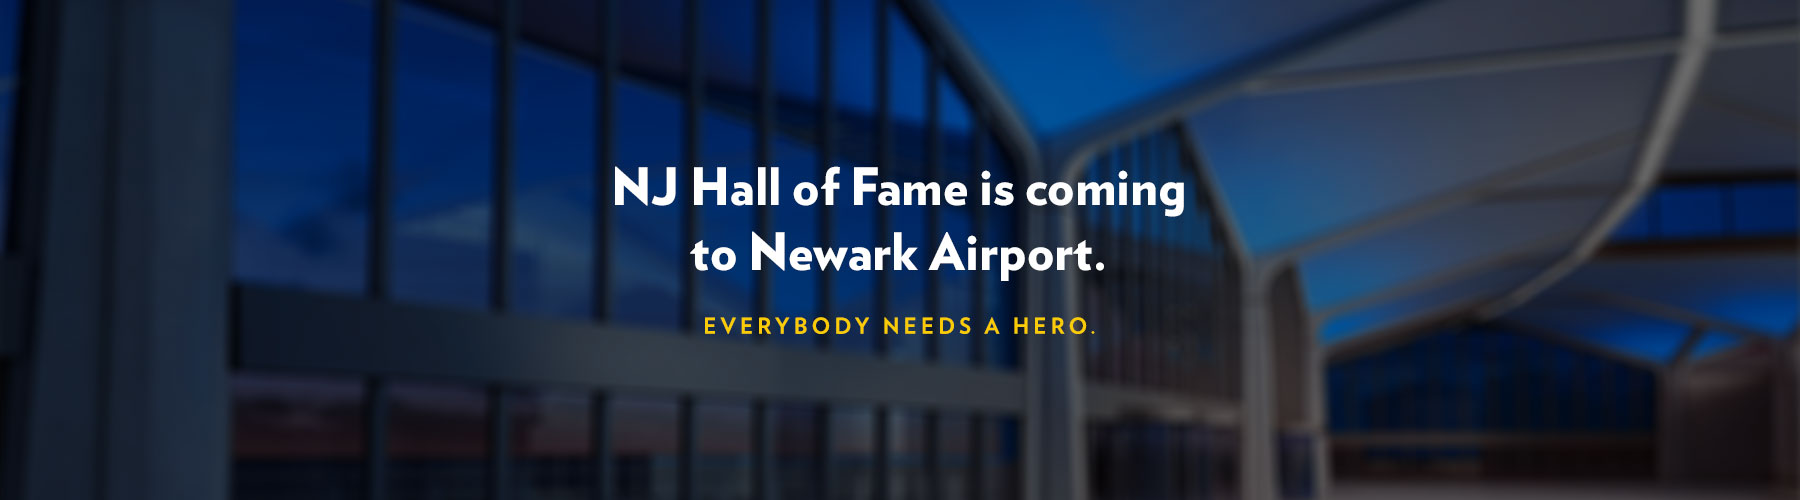 NJHOF Exhibit Opening at Newark Airport